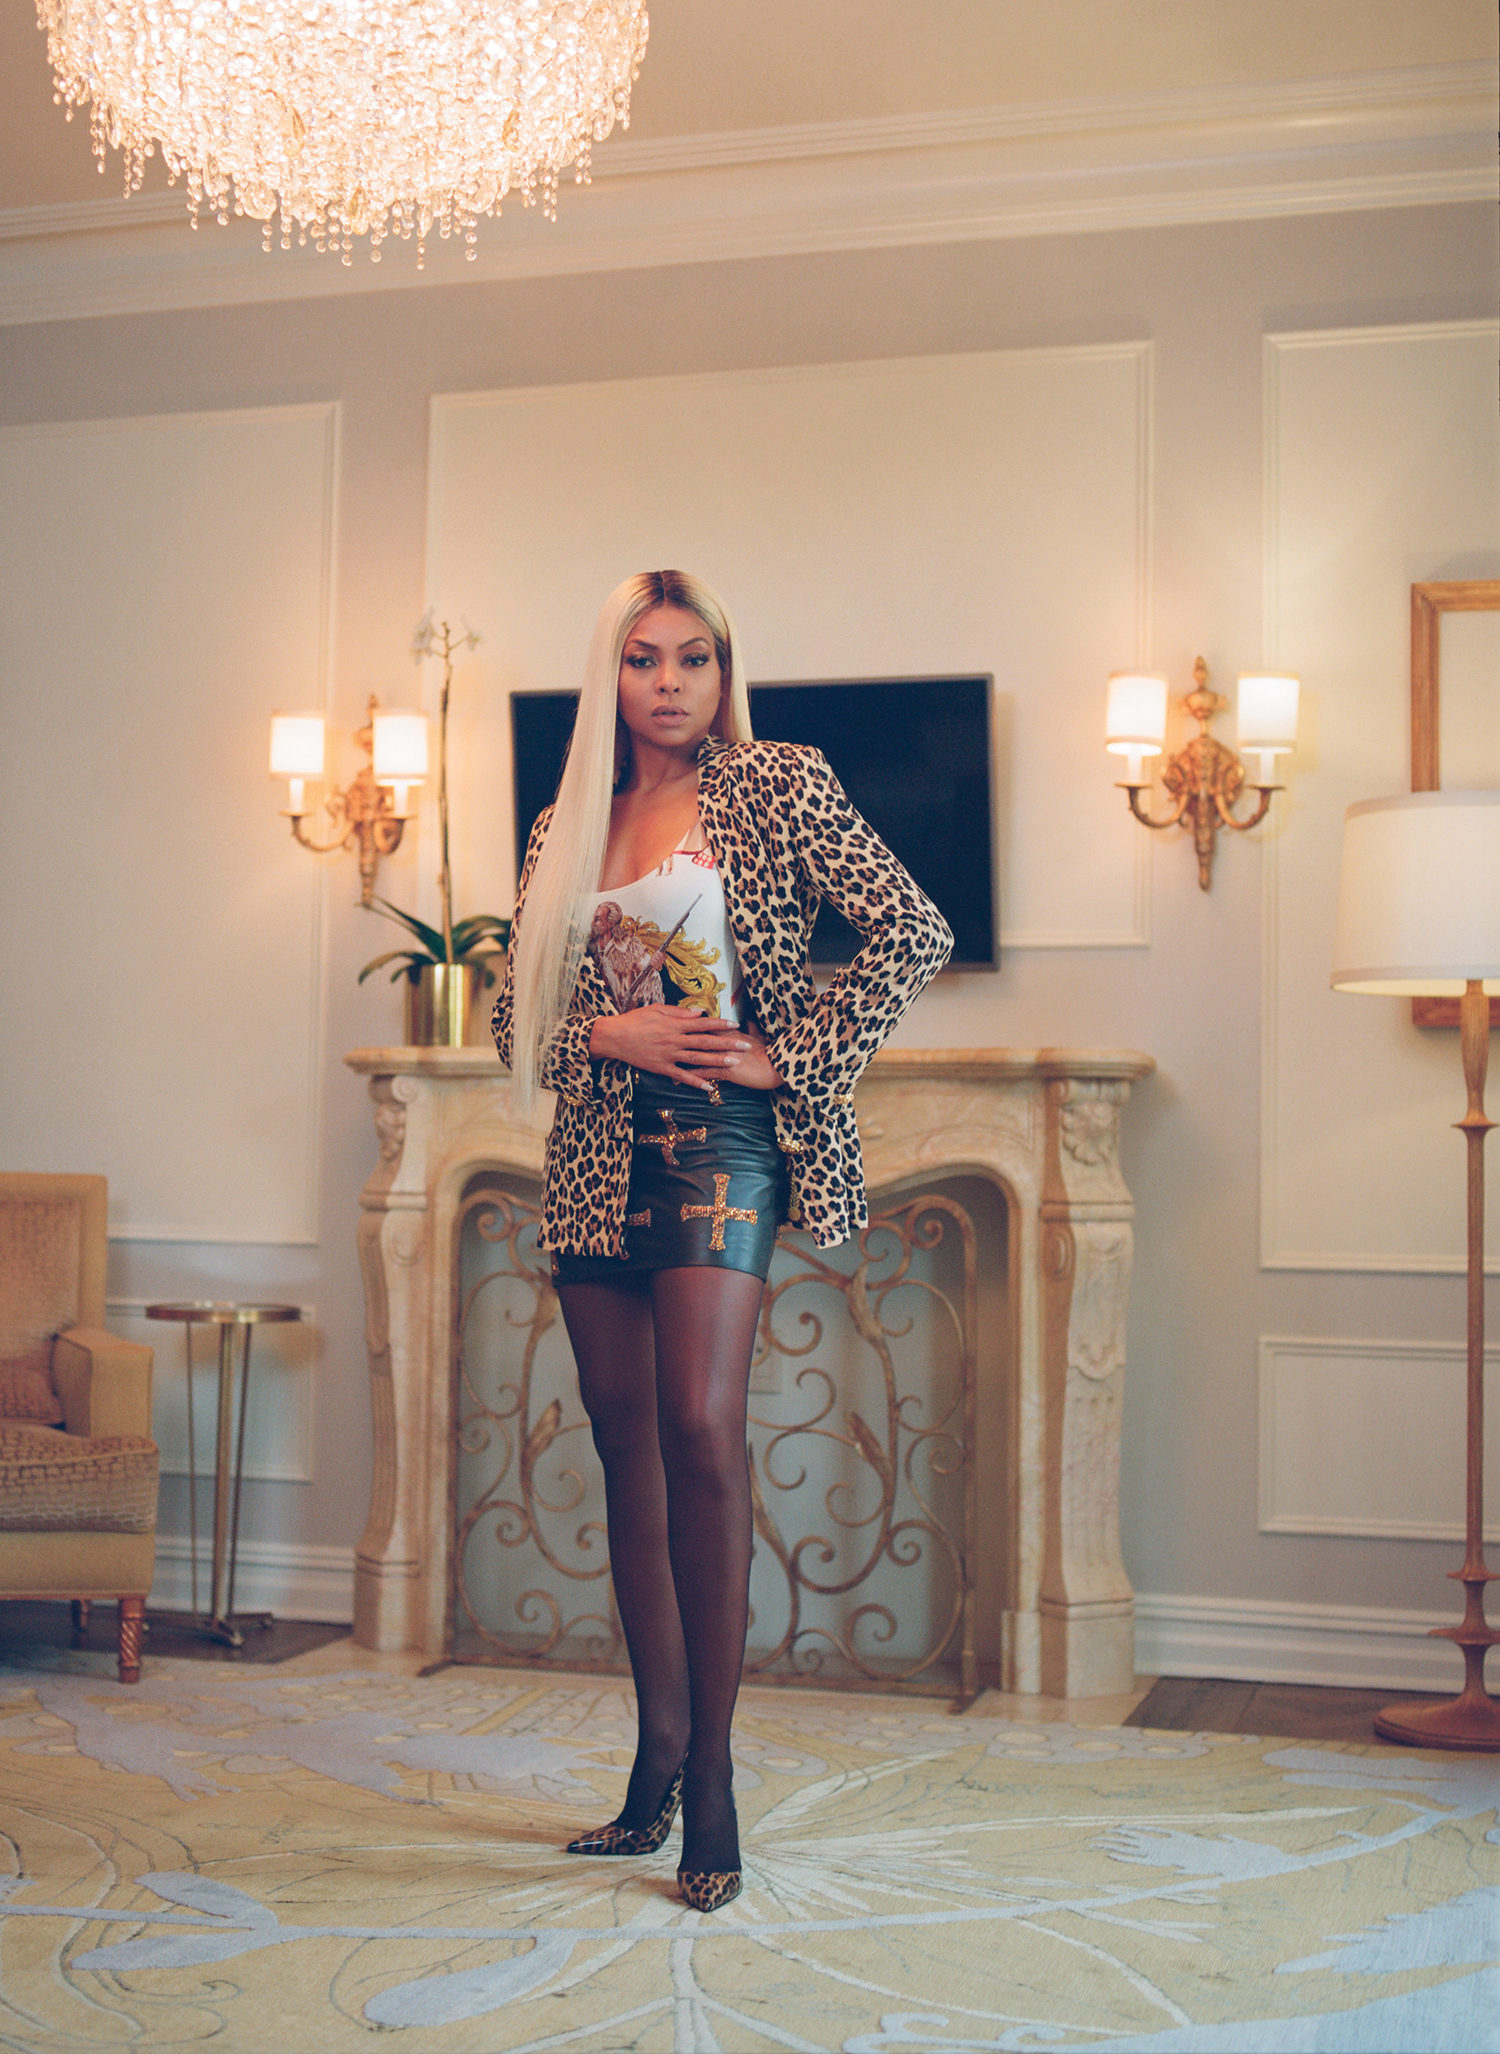 Iris Covet Book Studio Visits Ana Khouri Millenia Olivia Abstract Dress Jacket Bodysuit And Skirt Vintage Gianni Versace At My Haute Wardrobe Tights By Wolford Shoes Christian Louboutin